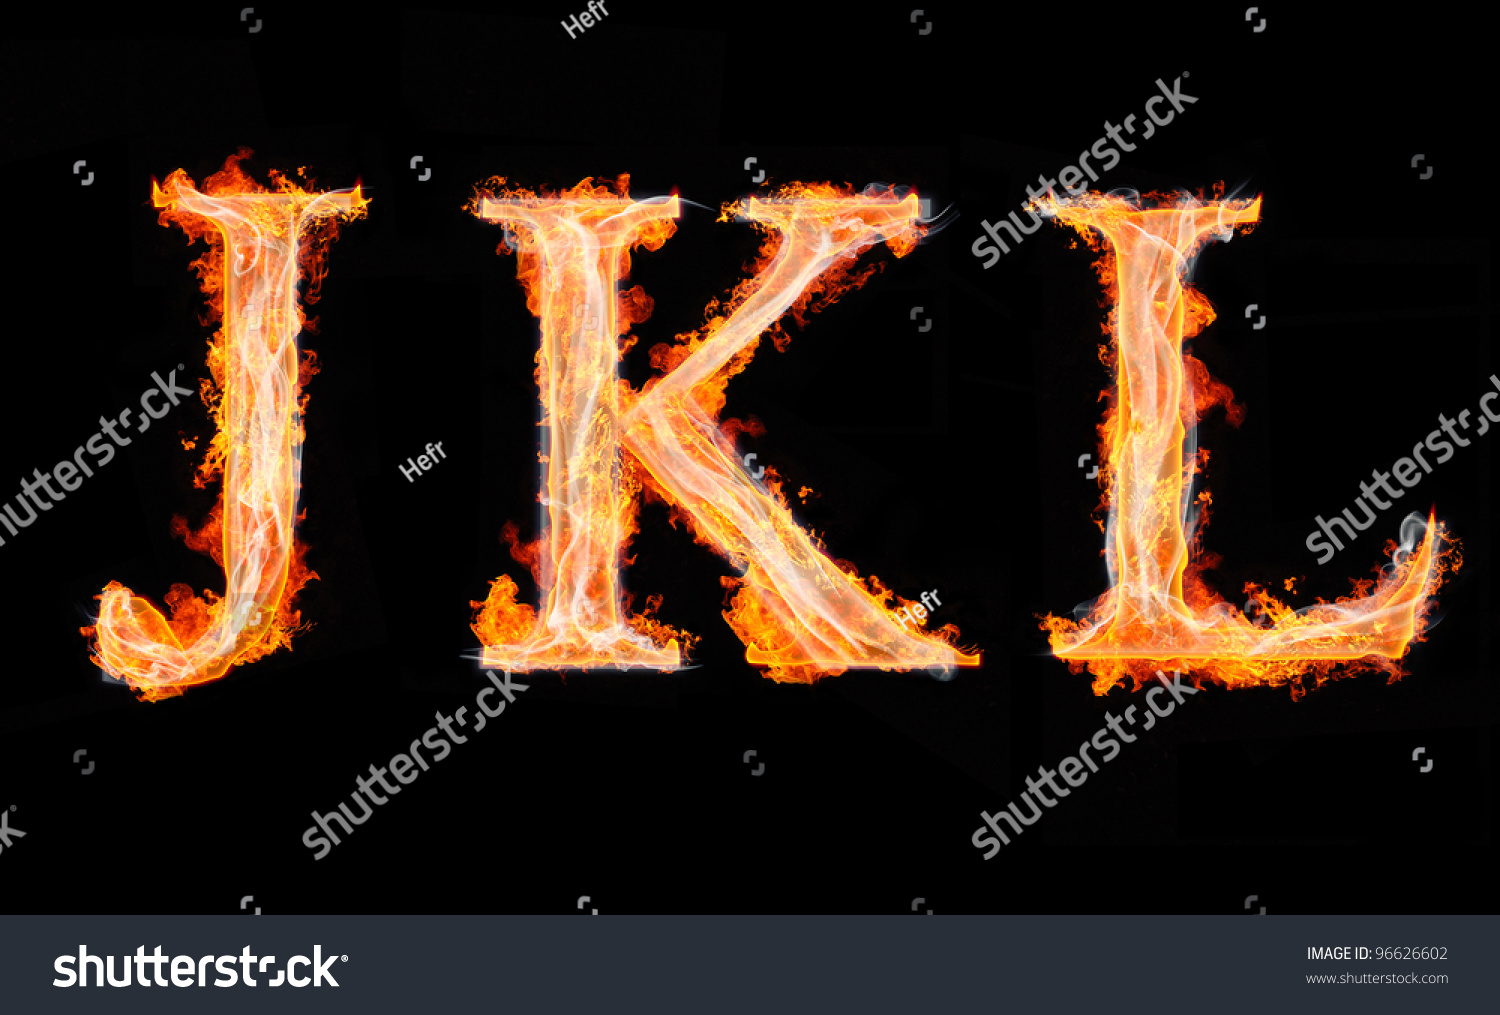 Jkl Letters From Fire Isolated On Black Stock Photo 96626602 : Shutterstock